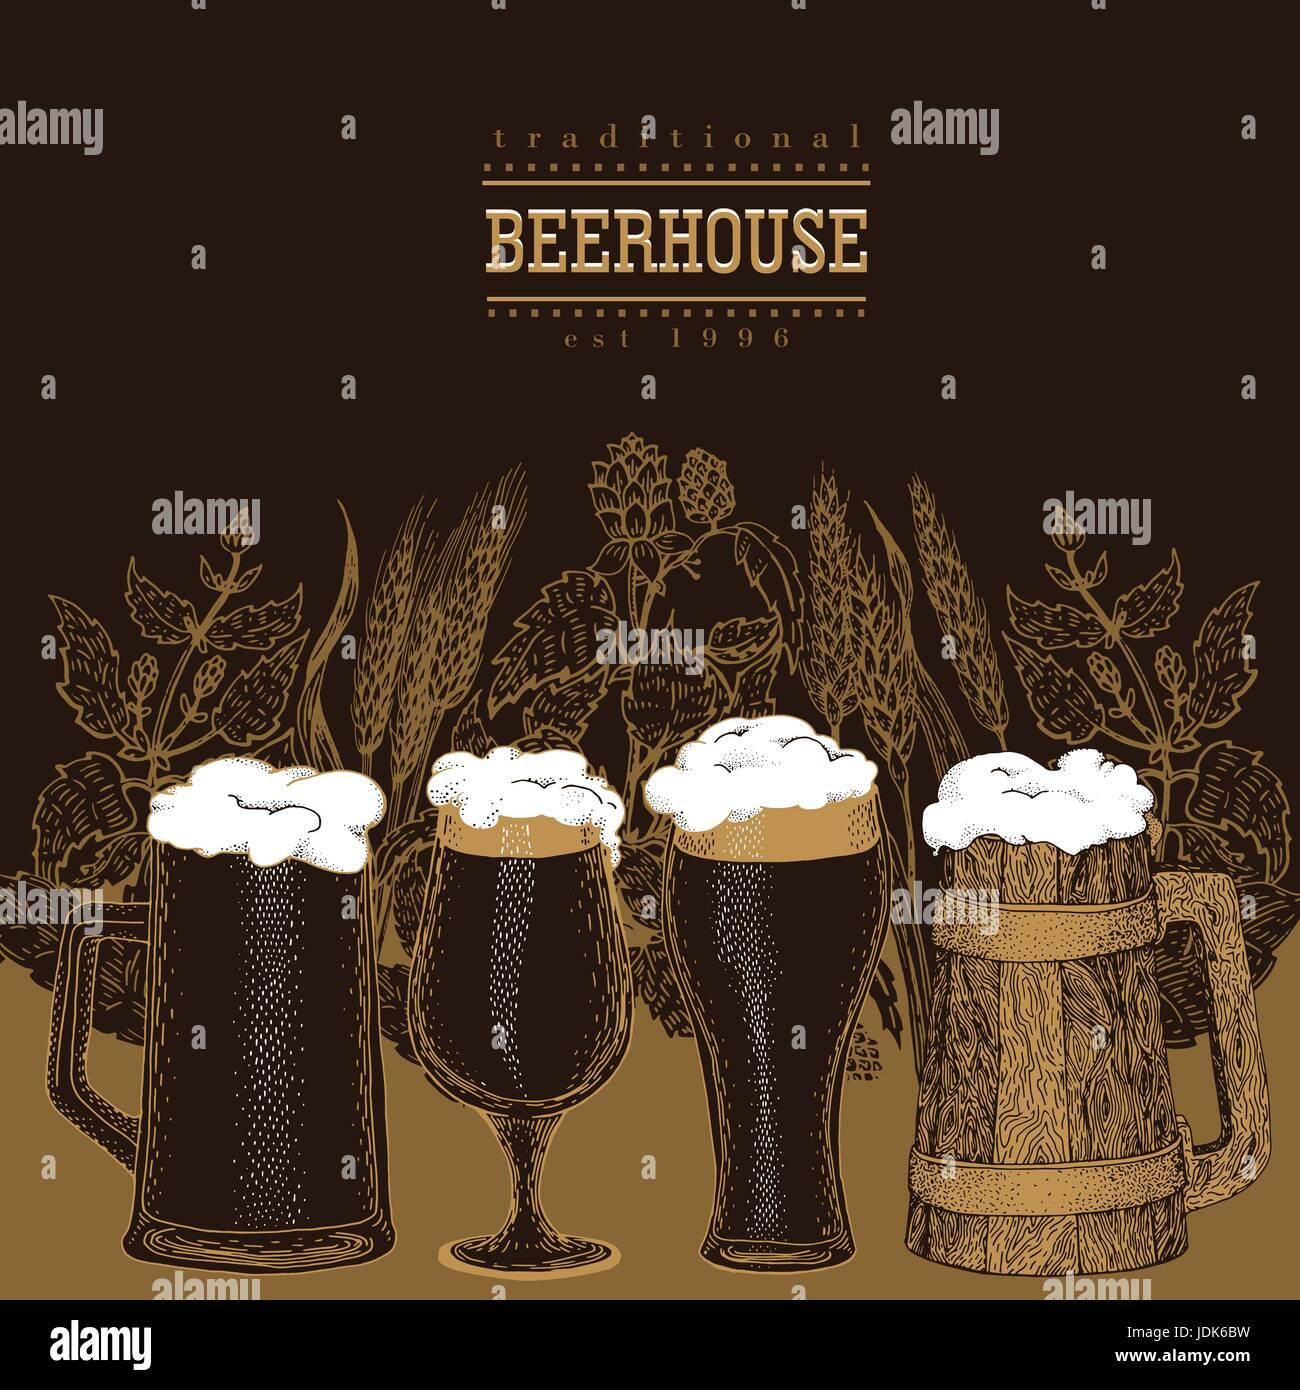 Beer Hand Drawn Stockfotos & Beer Hand Drawn Bilder - Alamy